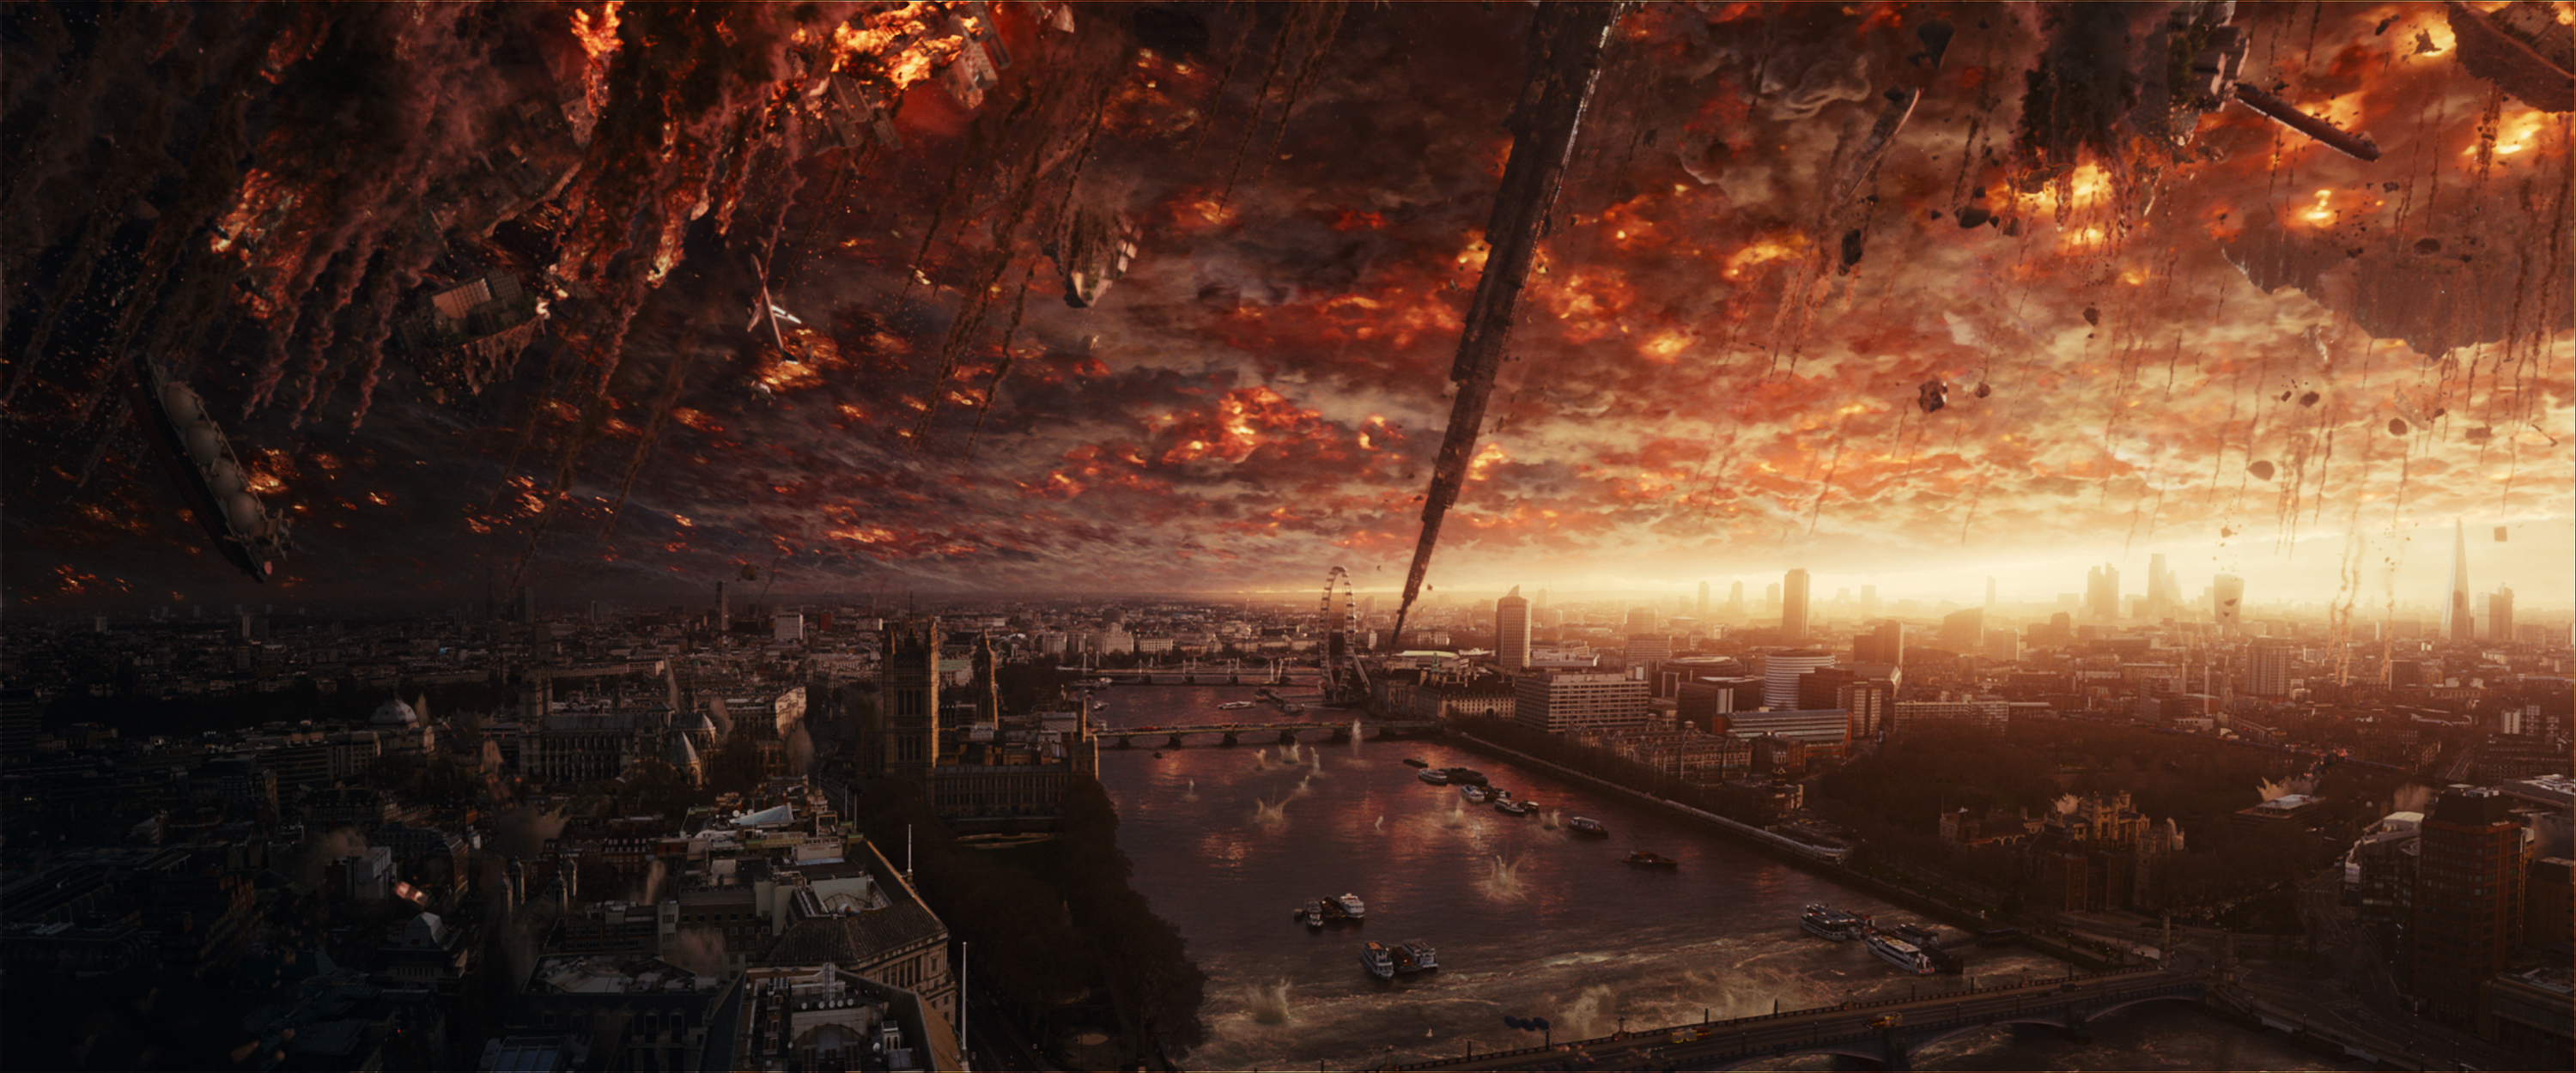 ID2_UMS_133_0460_ref_still-comp-01094_v0016 - An alien attack has devastating effects on a major world capital. Photo Credit: Courtesy Twentieth Century Fox.